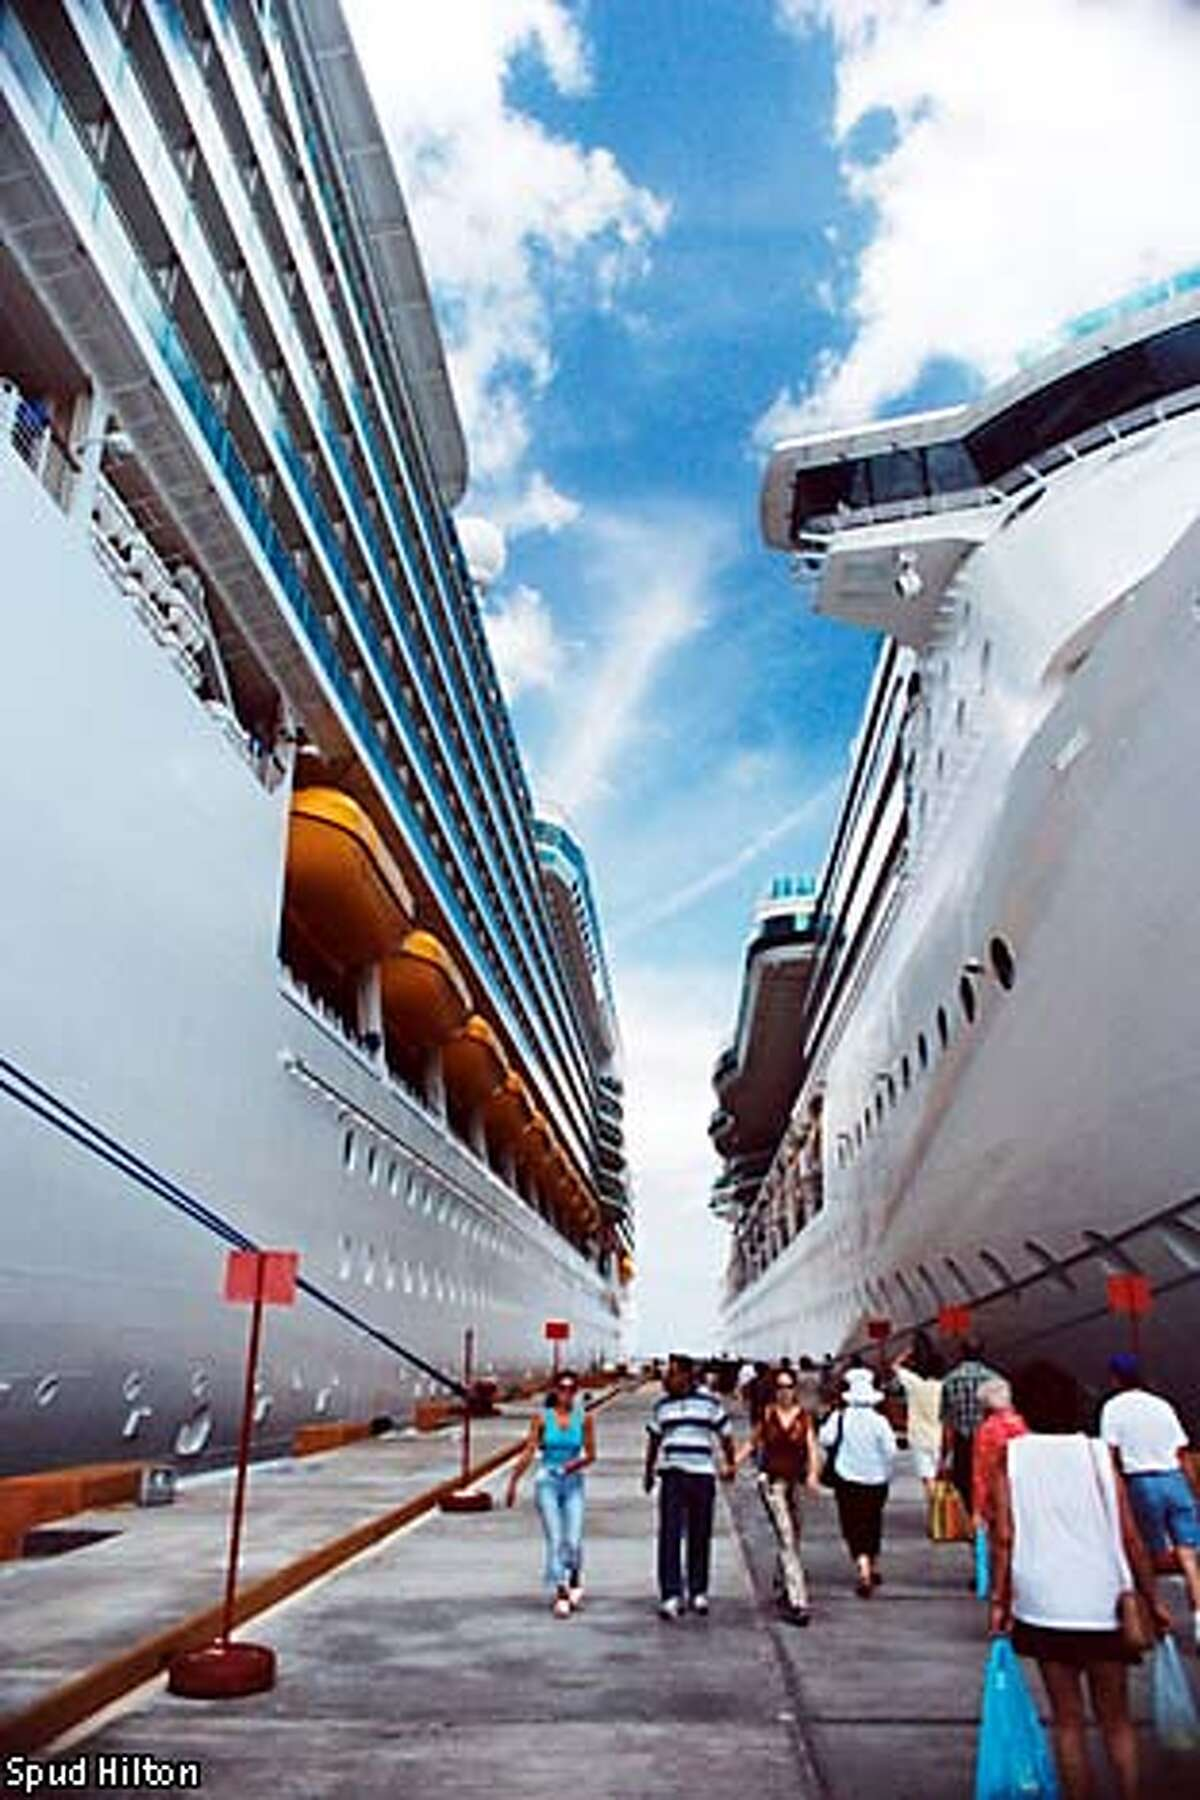 Big sister: The sky-scraping Navigator of the Seas, left, shares a pier in Cozumel, Mexico, with smaller sibling Brilliance of the Seas. Photo by Spud Hilton, special to the Chronicle